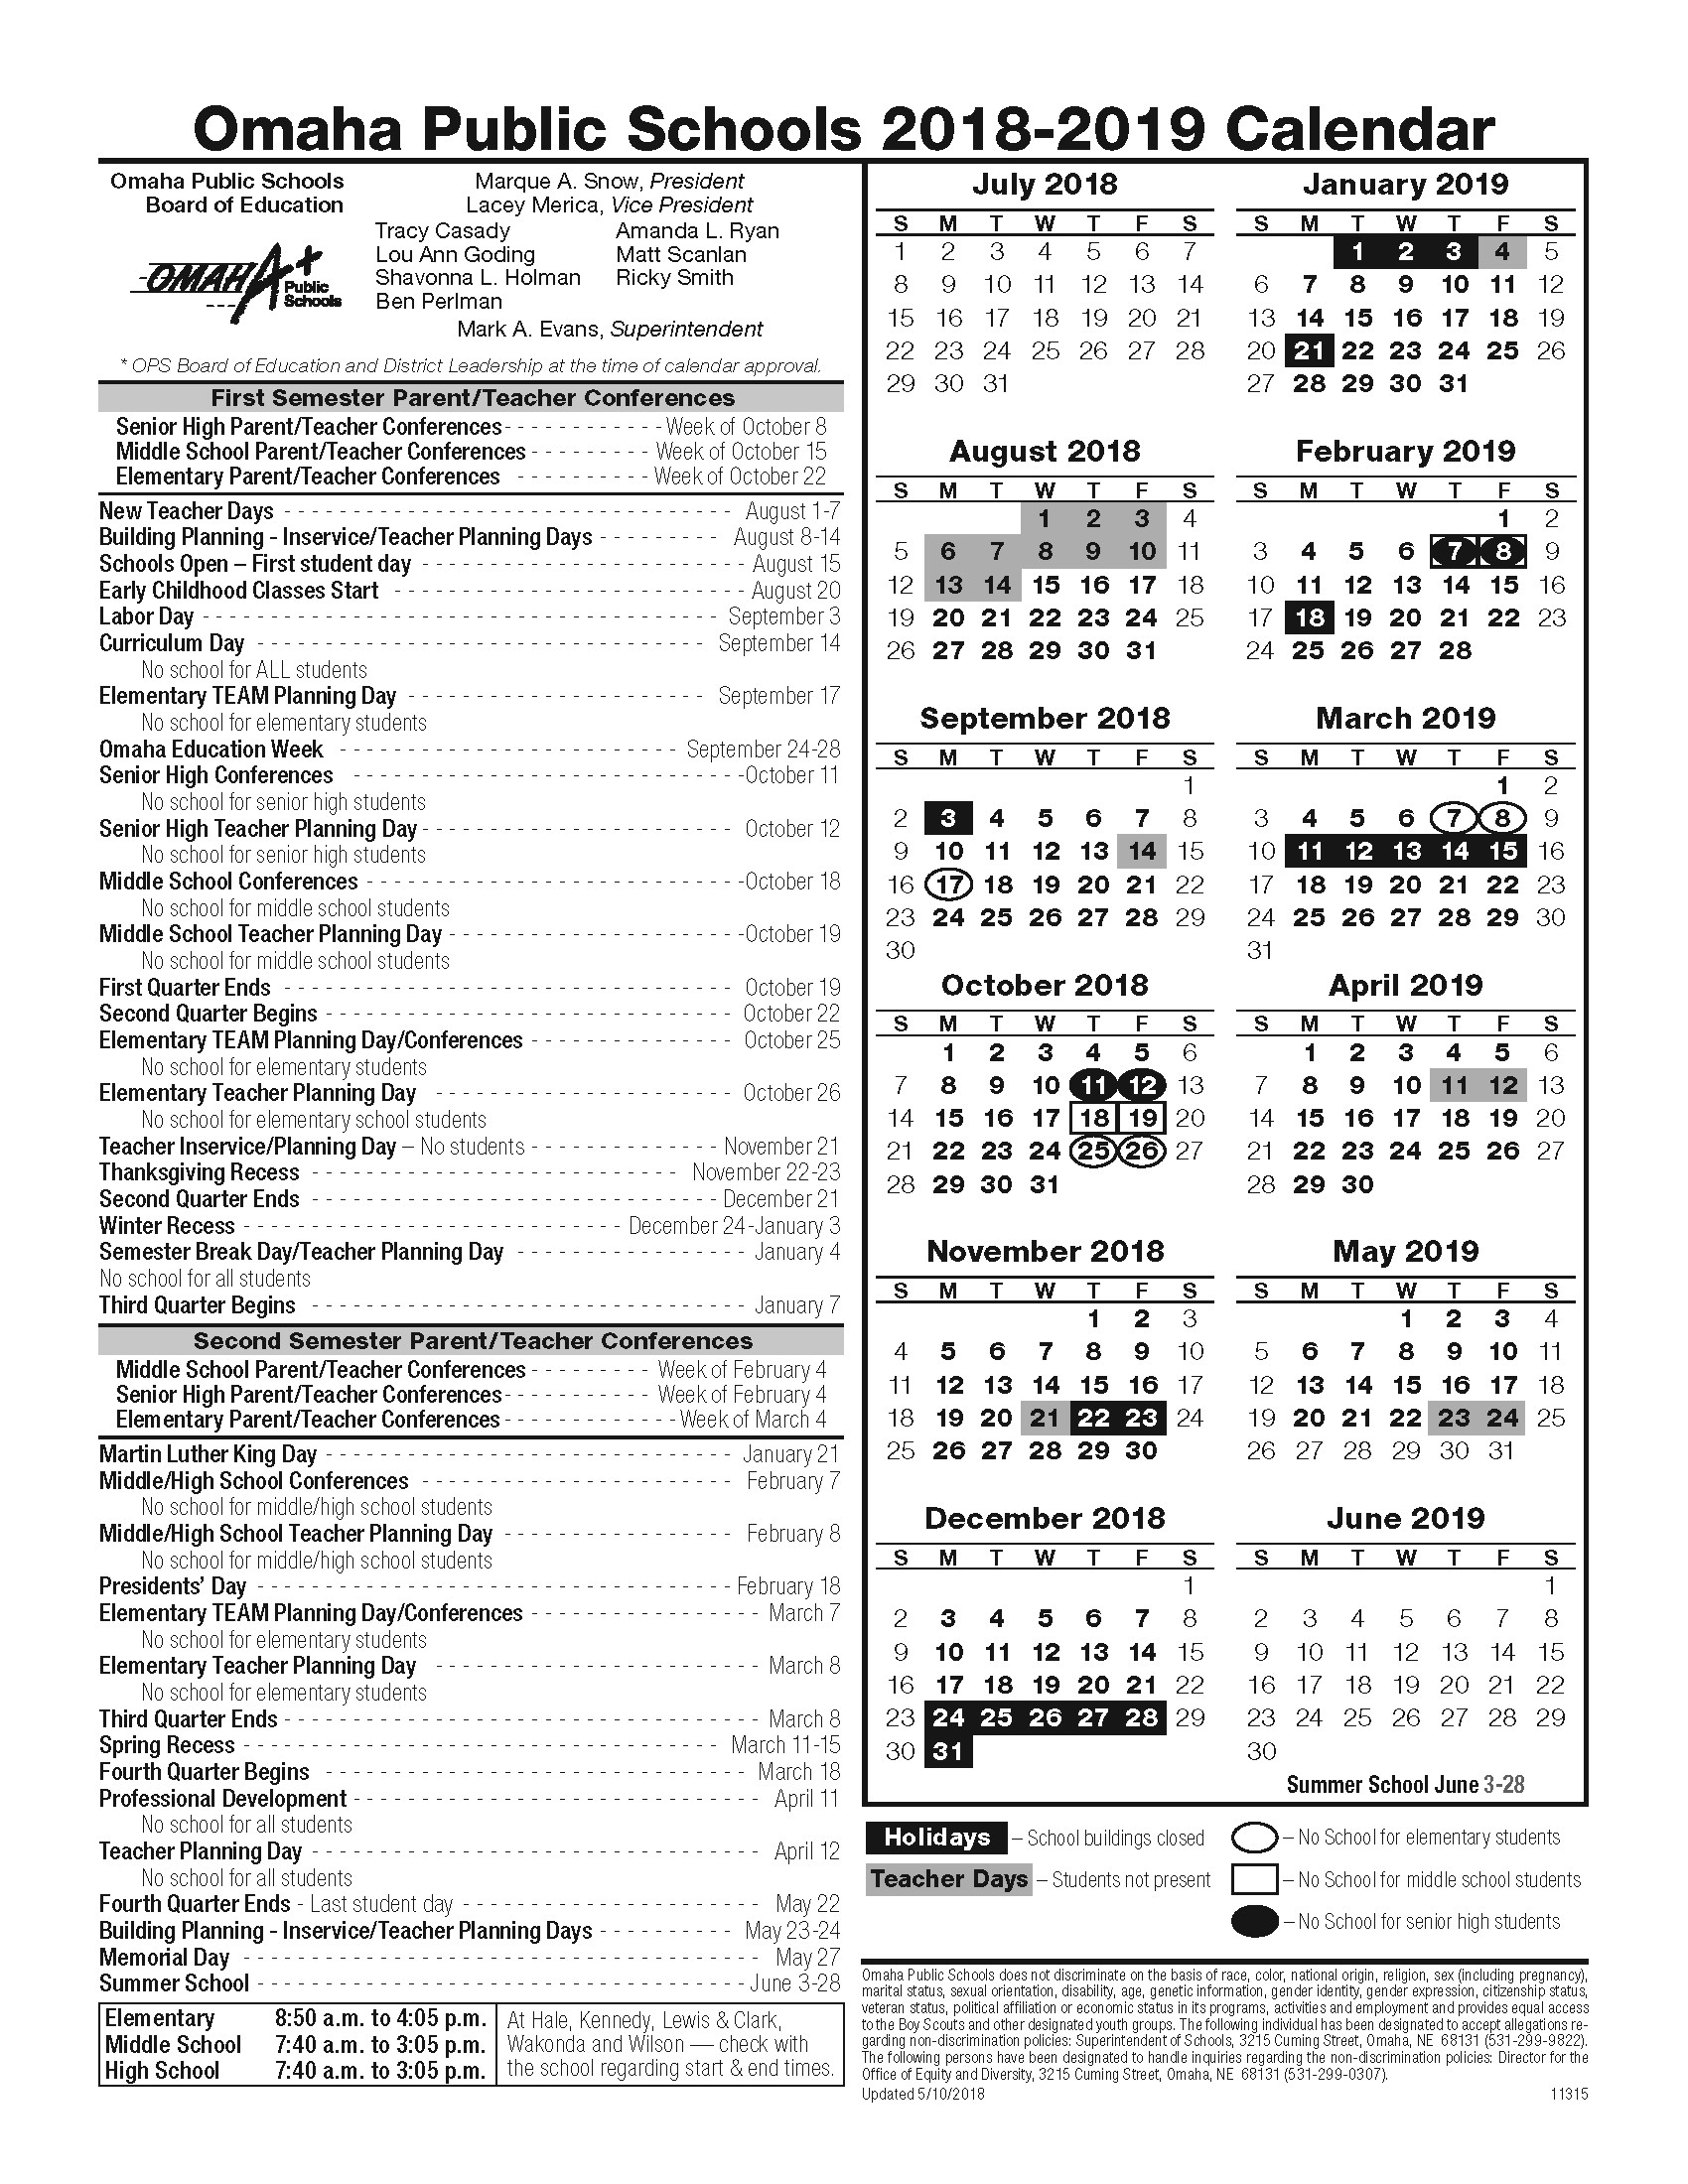 Calendario Escolar 2019 Kinder Recientes Updated 2018 19 Academic Calendar Omaha Public Schools Of Calendario Escolar 2019 Kinder Más Populares Calendario Escolar 2018 2019 Sep Calendario Oficial